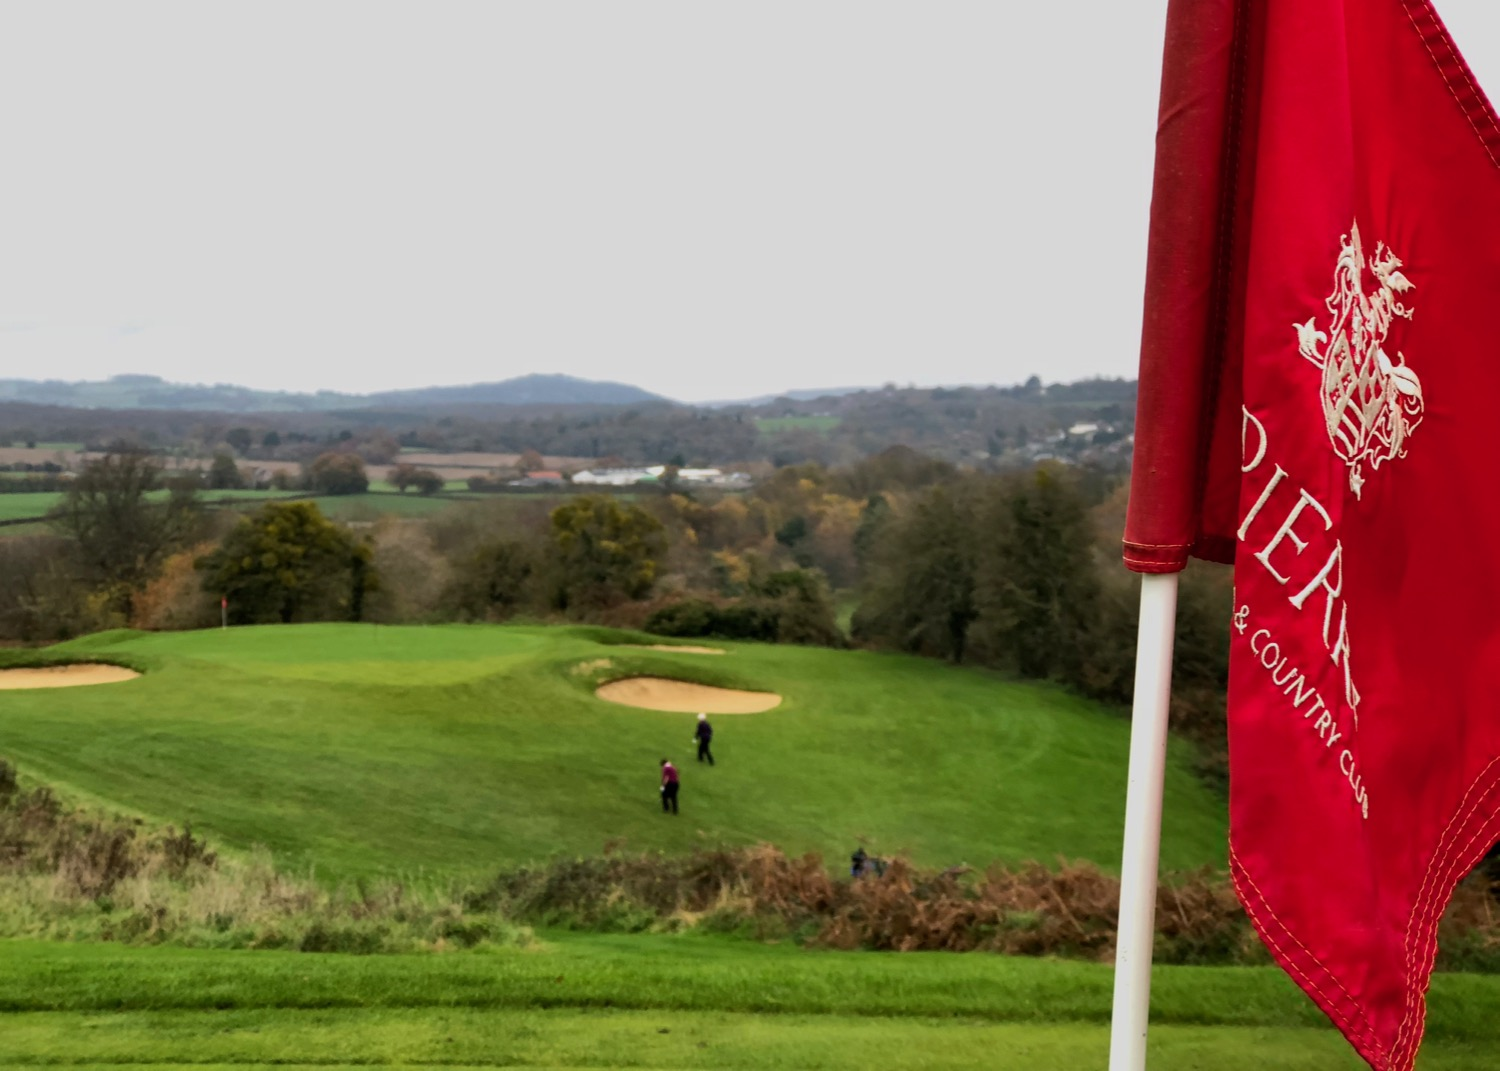 A nice view back at one of the excellent par 3s